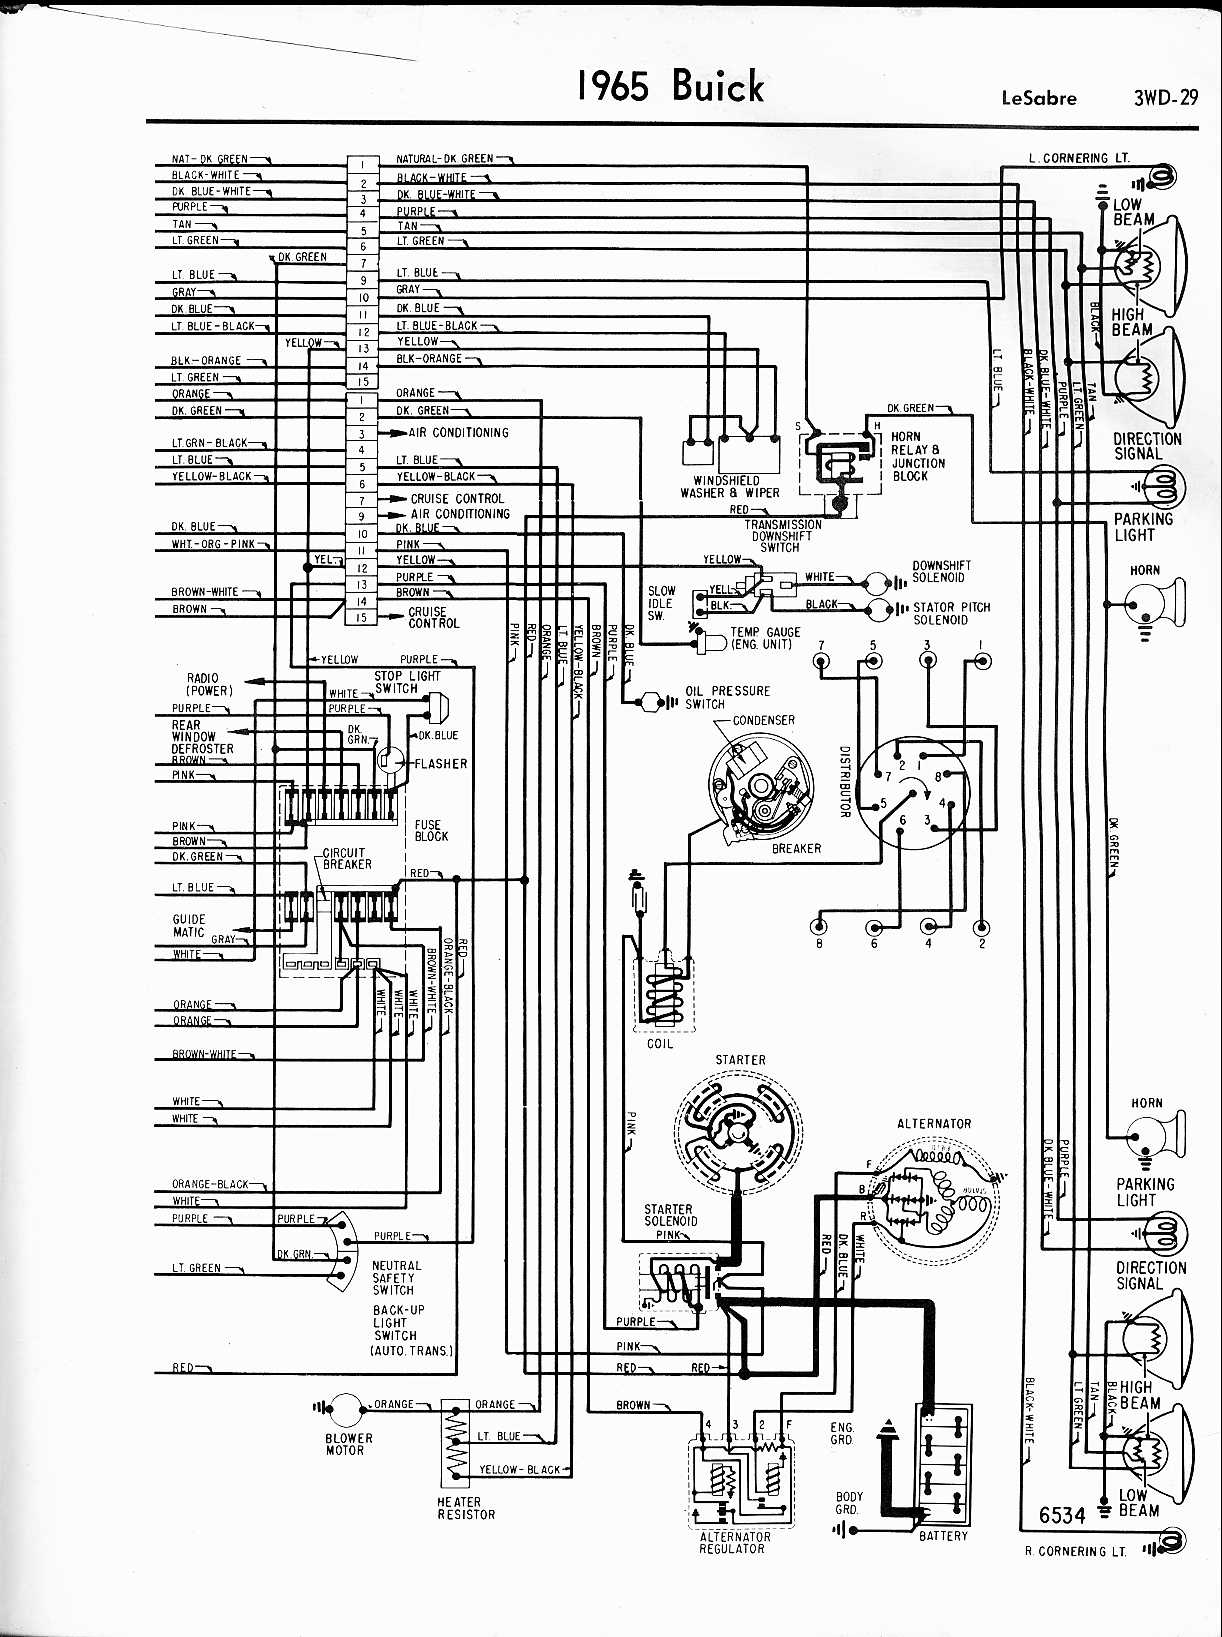 1994 Honda Accord Wiring Diagram 2002 Vw Beetle Wiper Relay Location 2000 Civic Si Fuse 1965 Lesabre Right Half